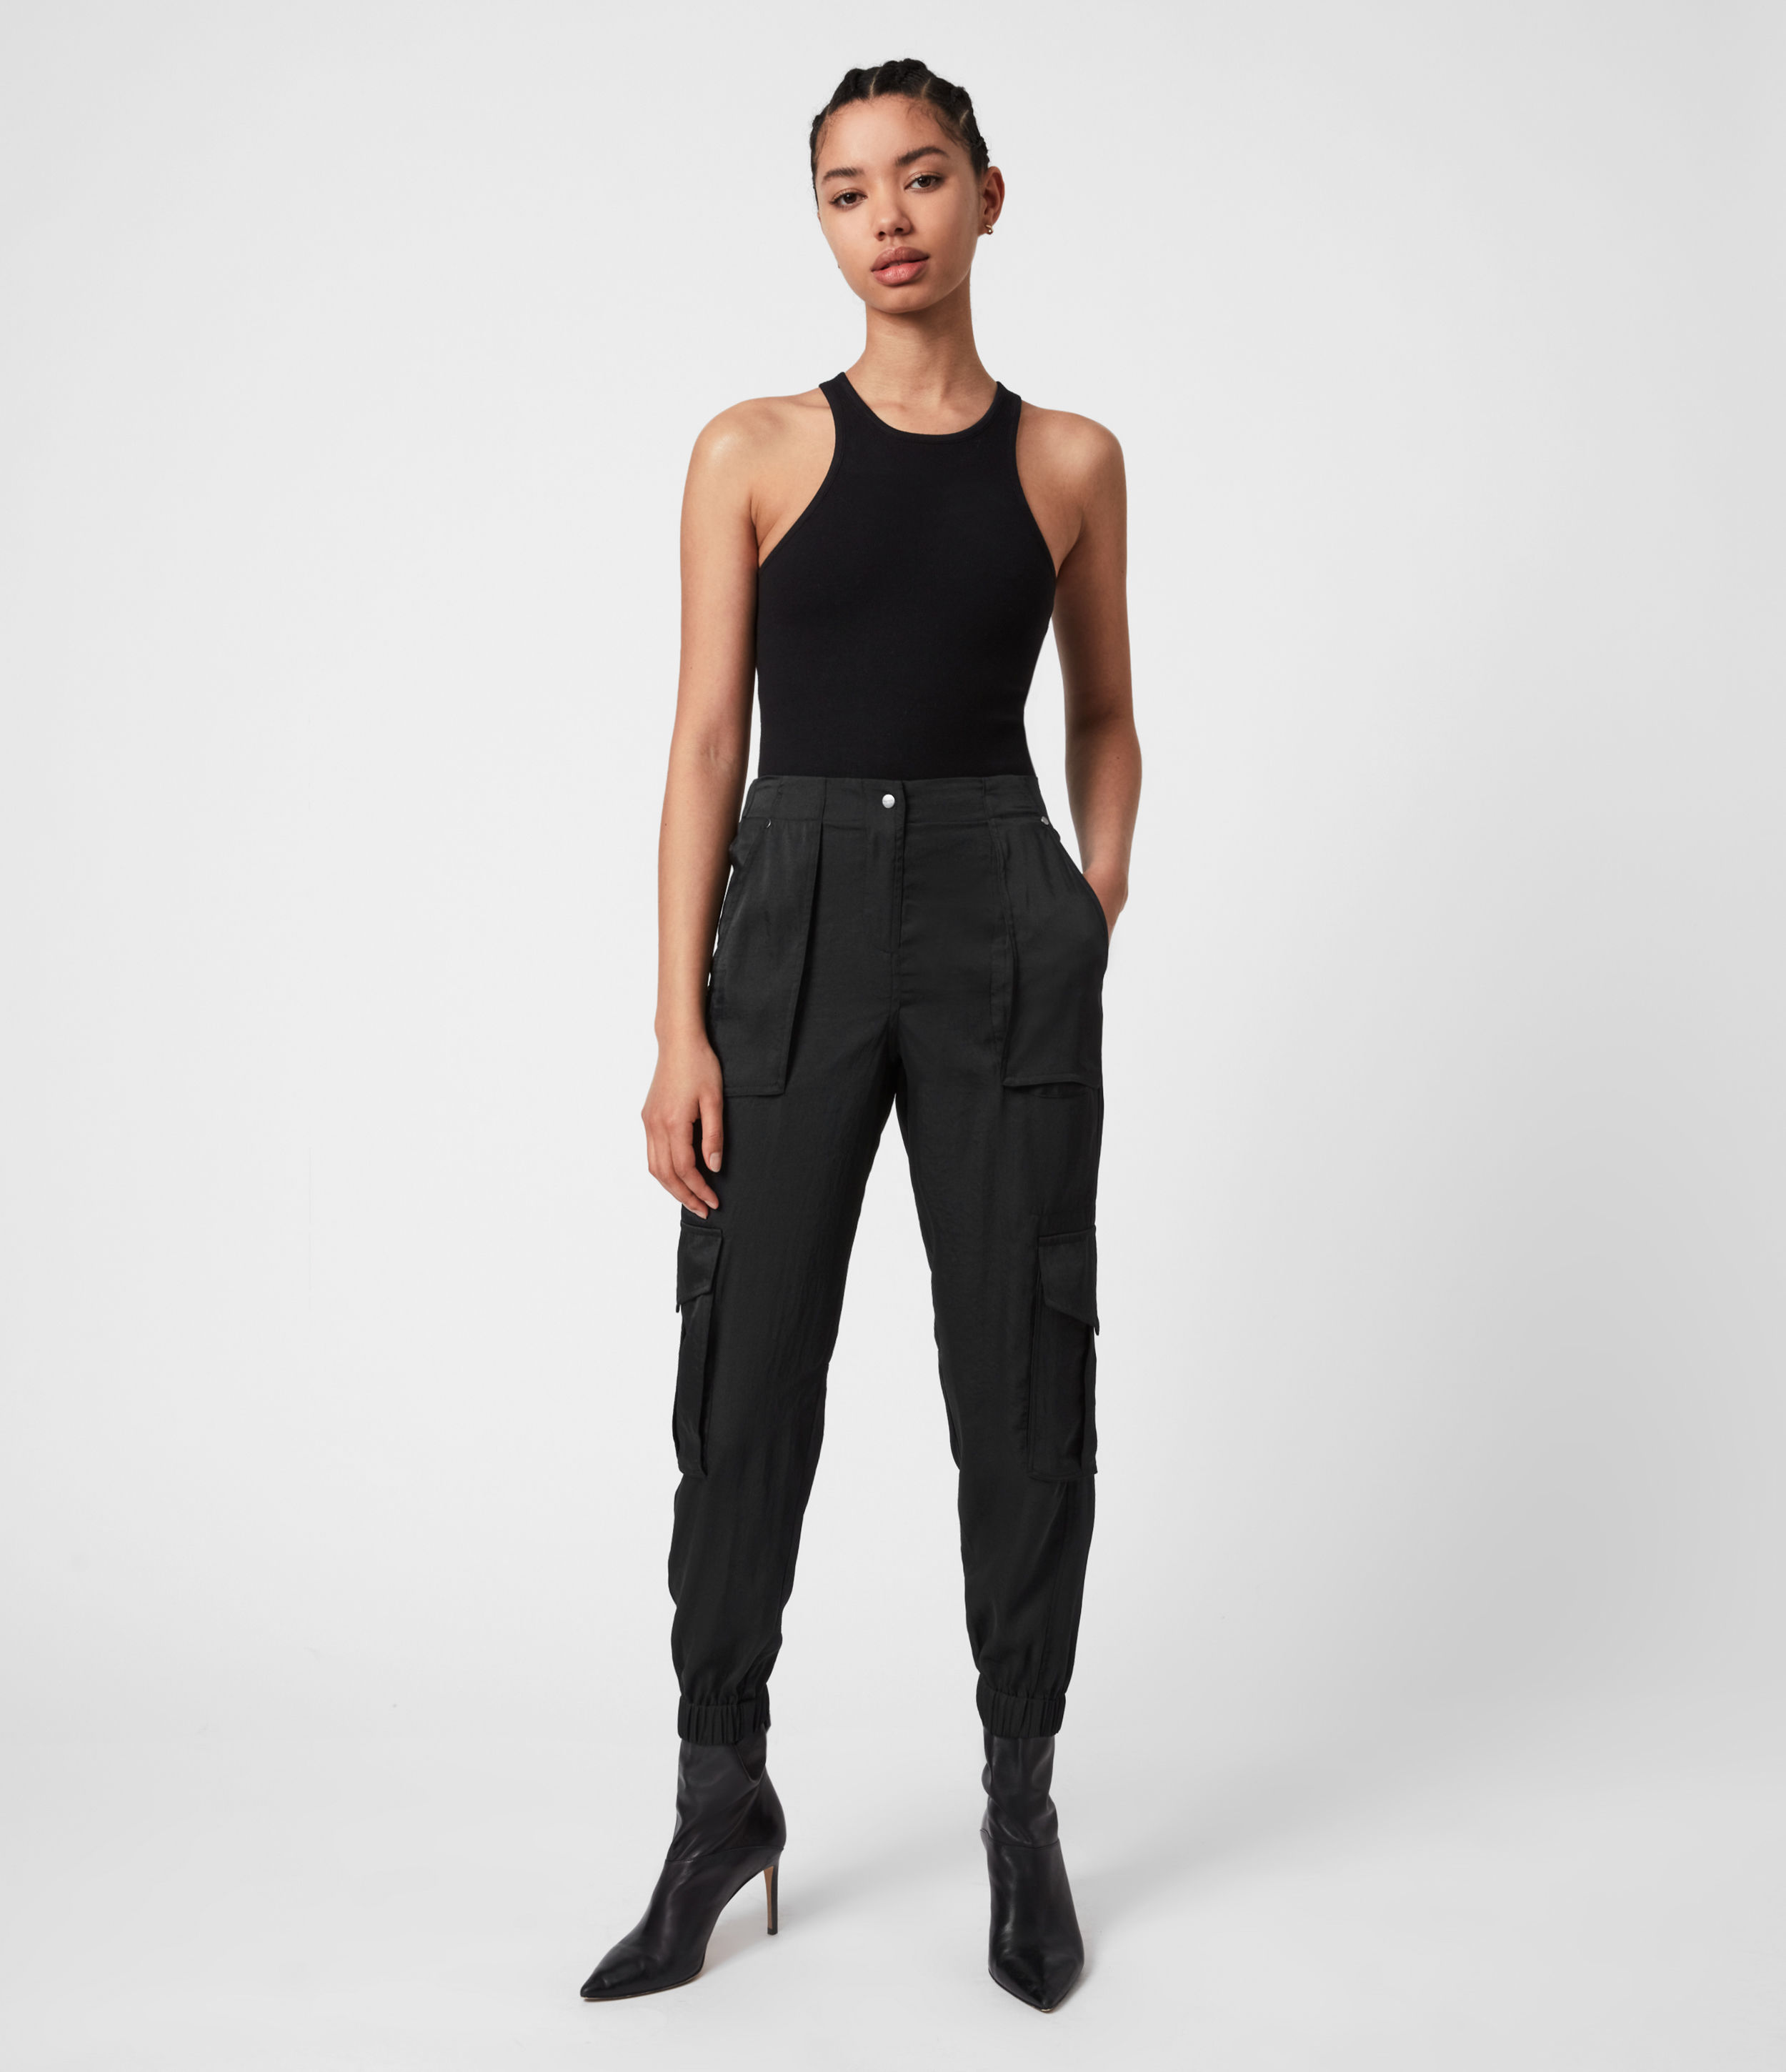 AllSaints Womens Frieda Mid-Rise Cuffed Trousers, Black, Size: 2